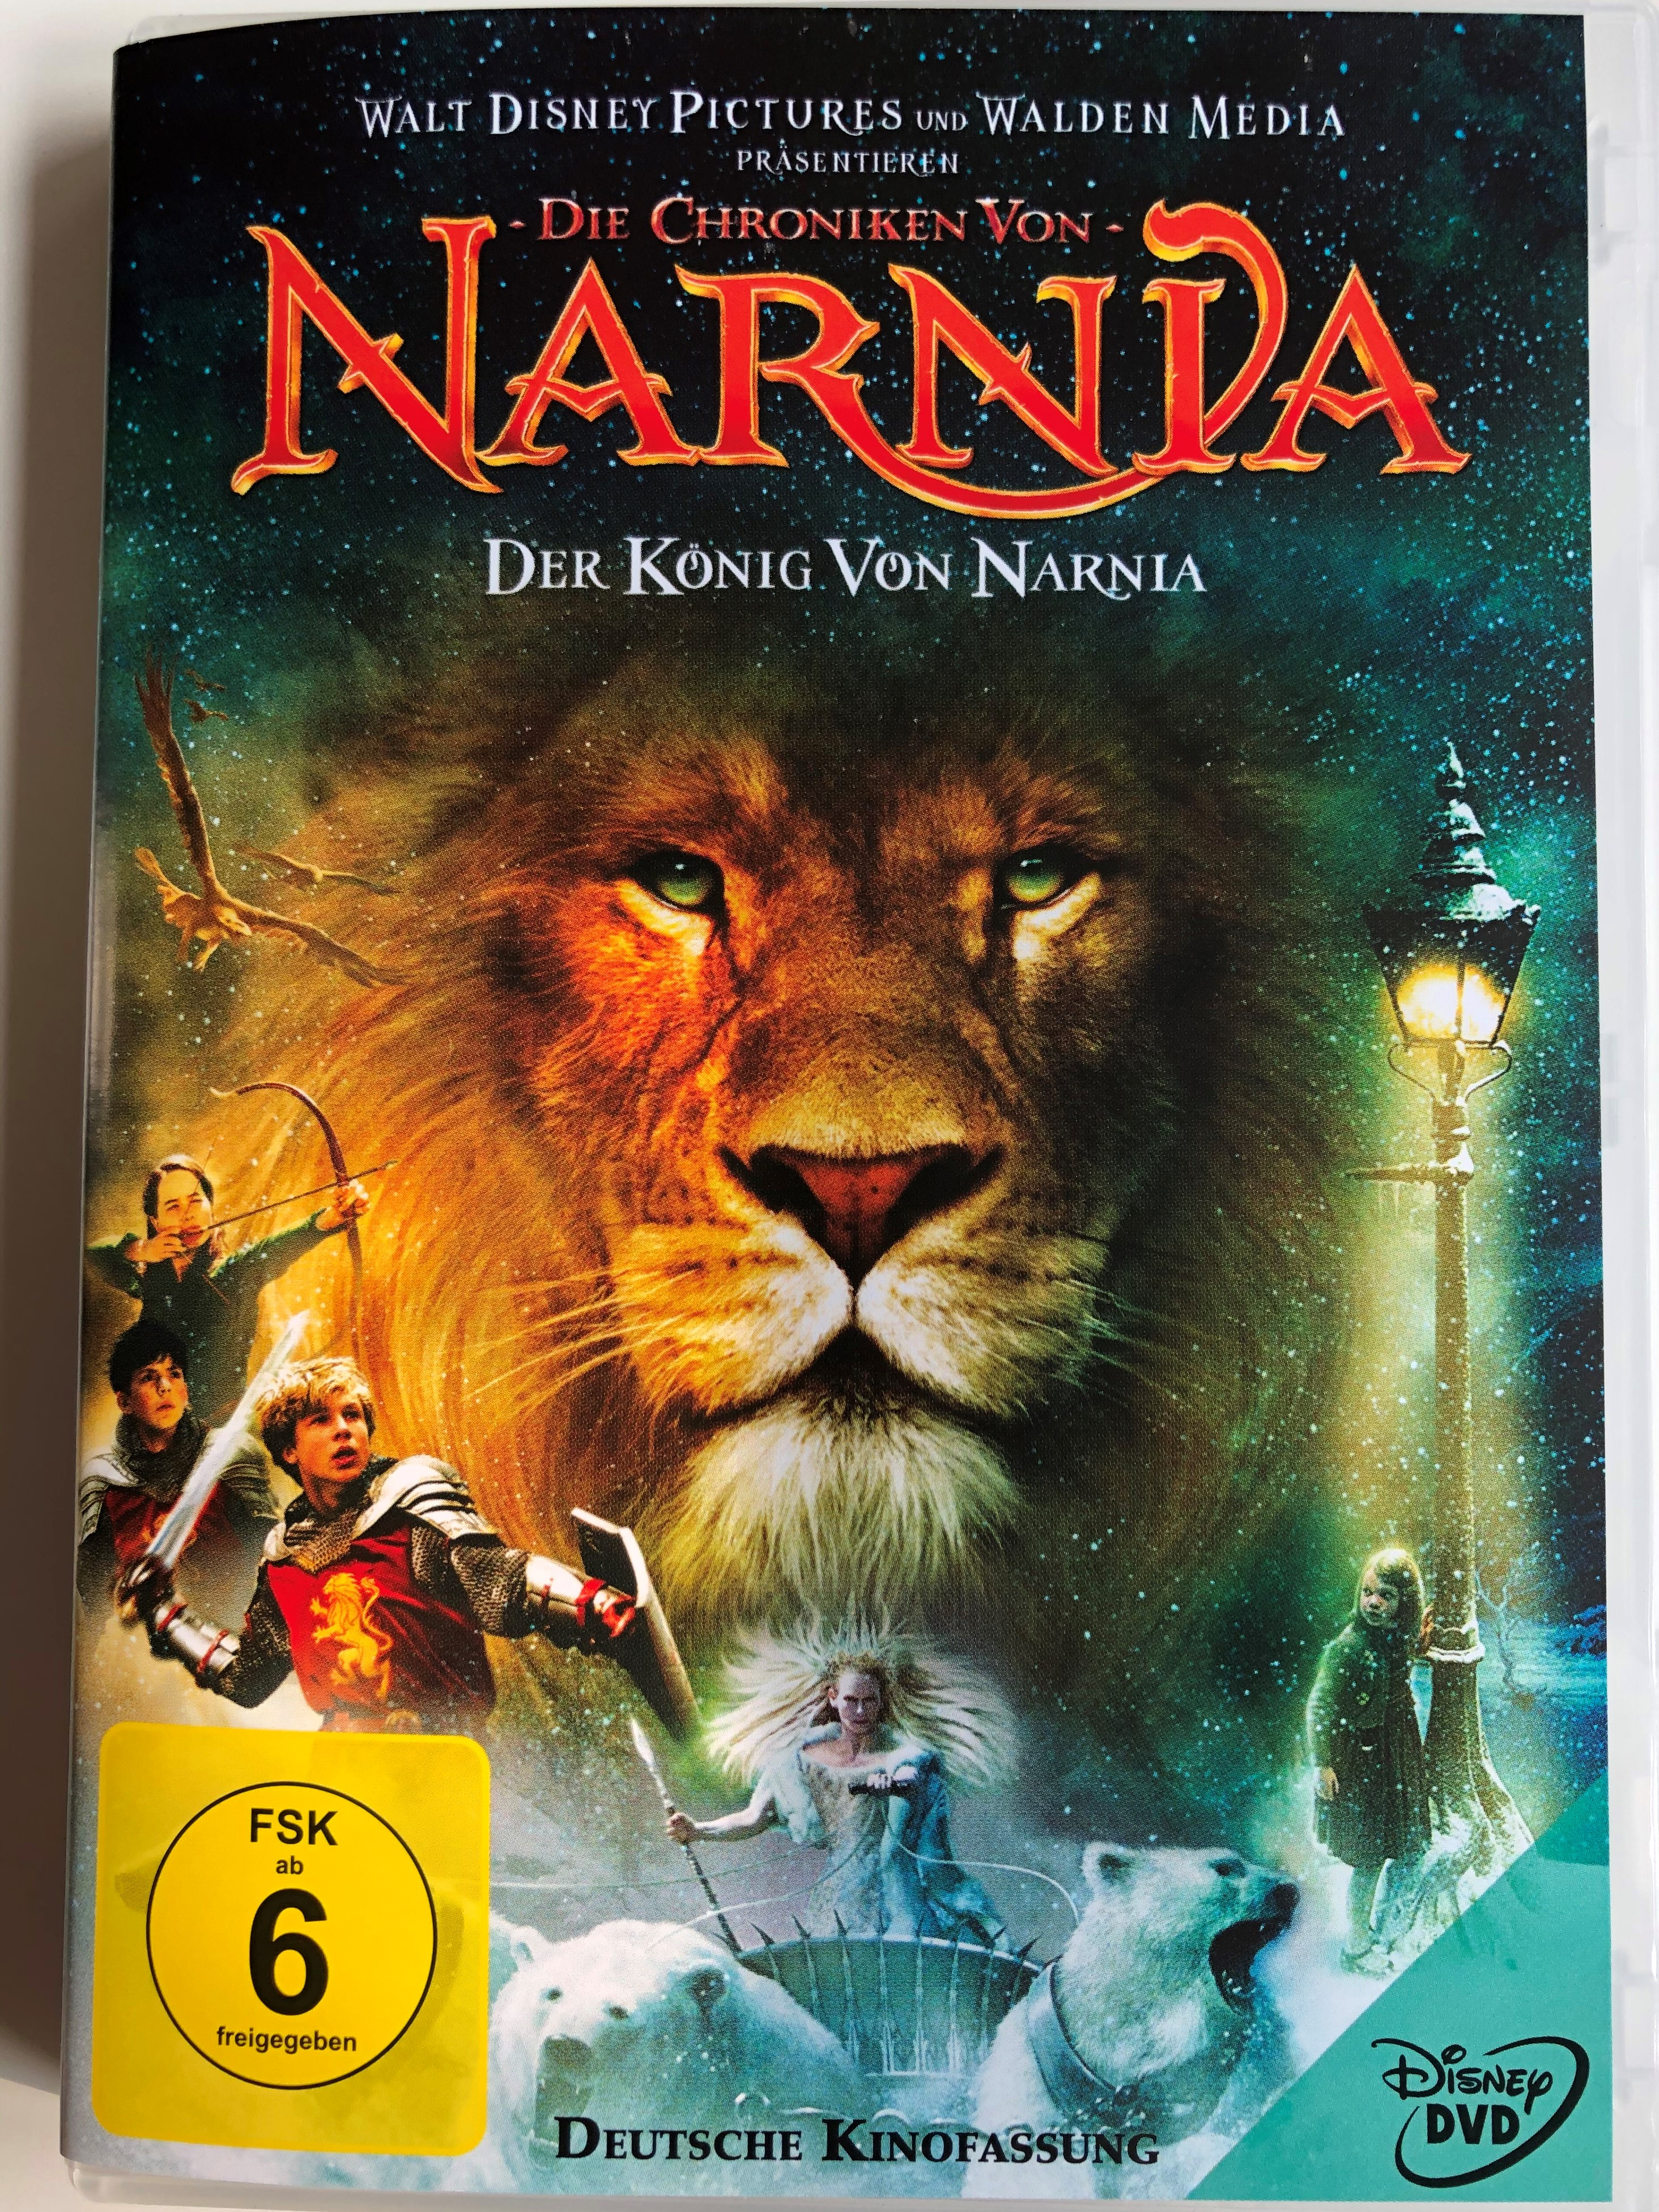 the-chronicles-of-narnia-the-lion-the-witch-and-the-wardrobe-dvd-2005-die-chroniken-von-narnia-der-k-nig-von-narnia-1.jpg